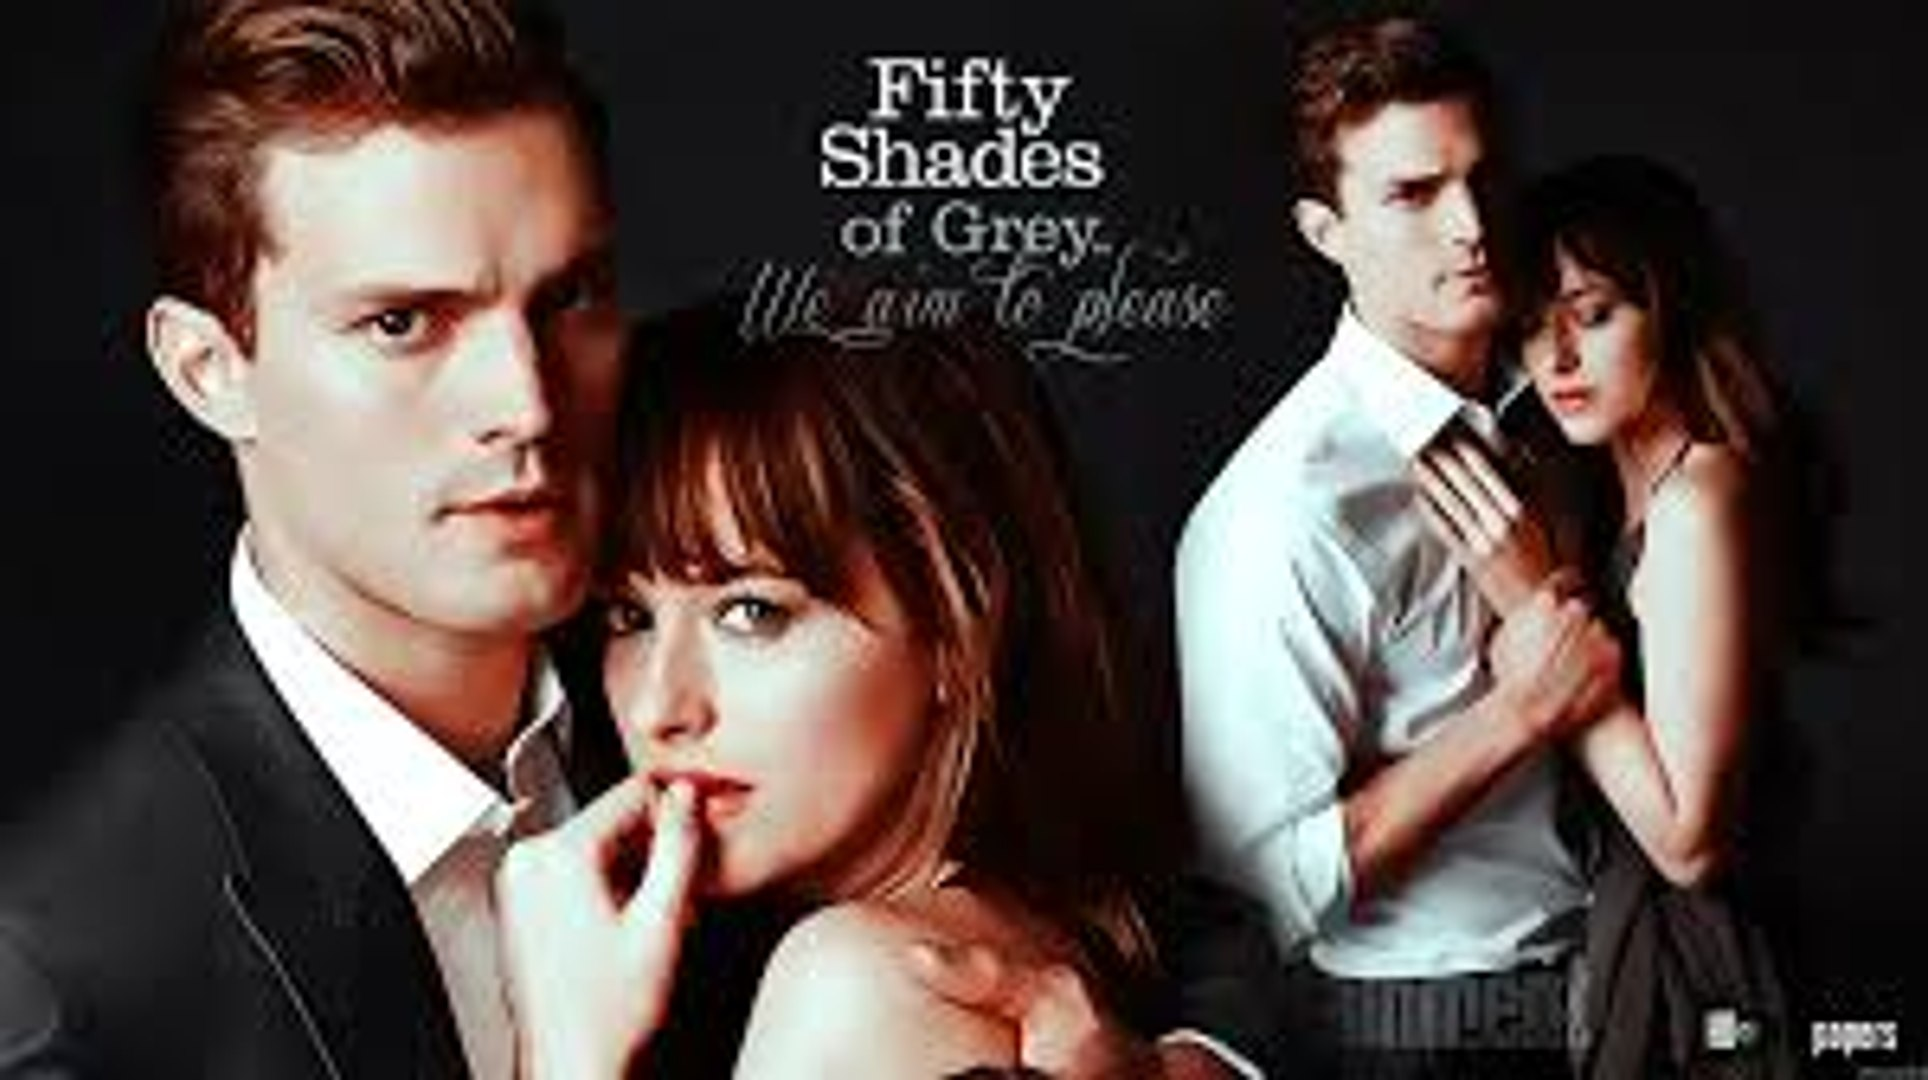 50fifty Shades Of Grey 2015 Full Movie Watch Online Full Hd1080p